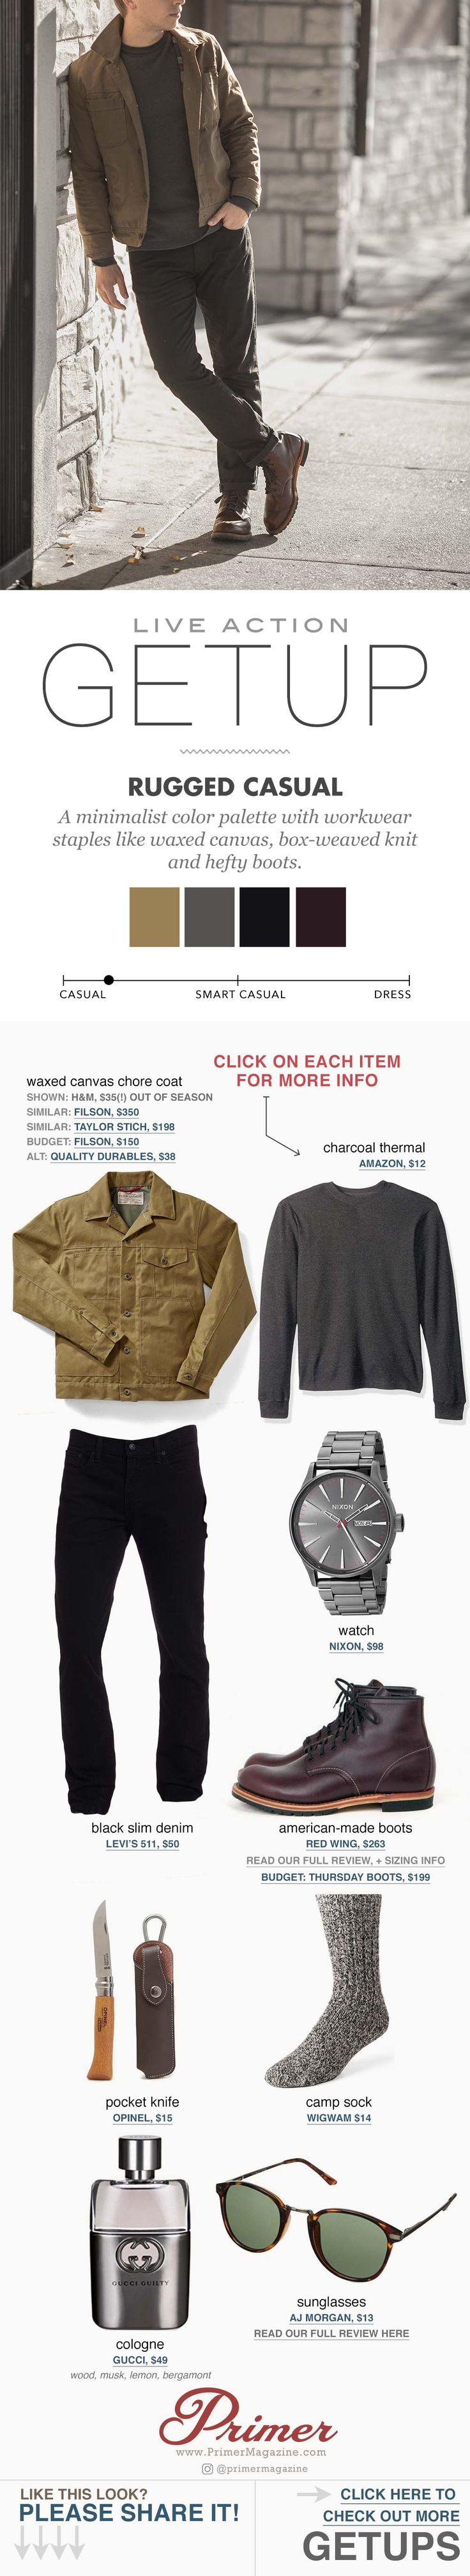 Style for guys. Fall rugged fashion with black jeans red wing boots #primer #getup